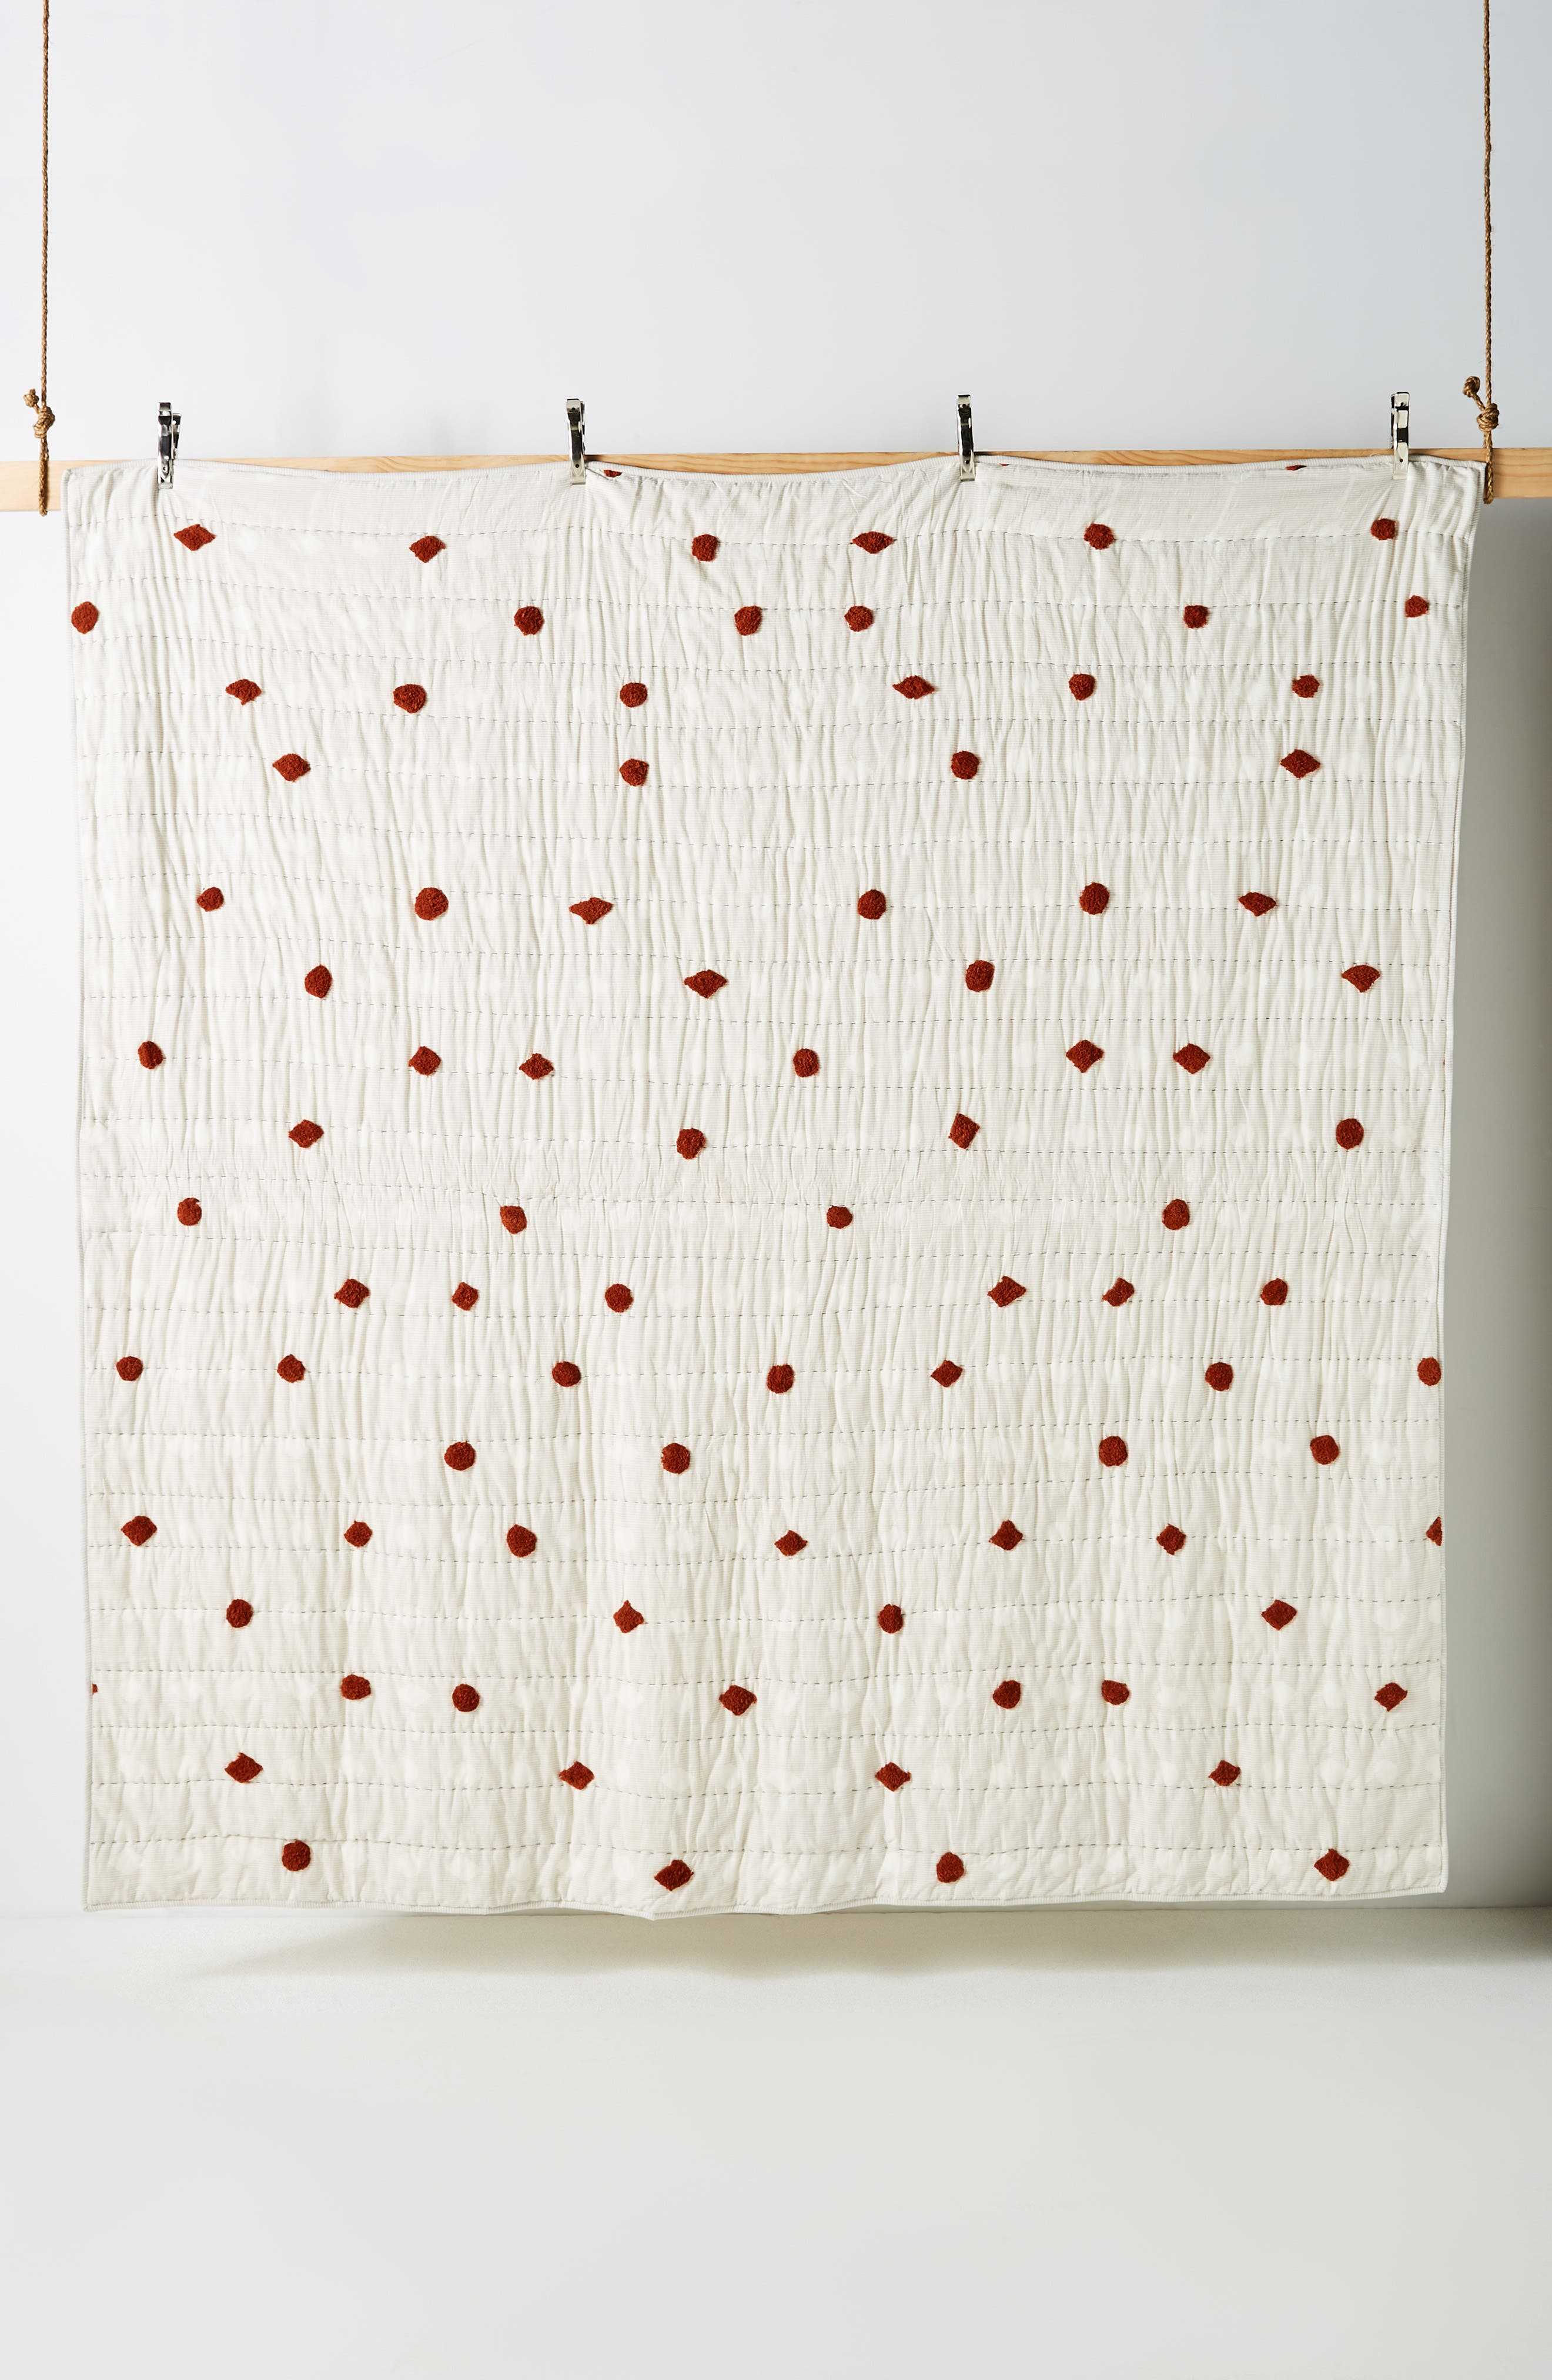 ANTHROPOLOGIE,                             Mesa Tufted Quilt,                             Alternate thumbnail 3, color,                             RUST